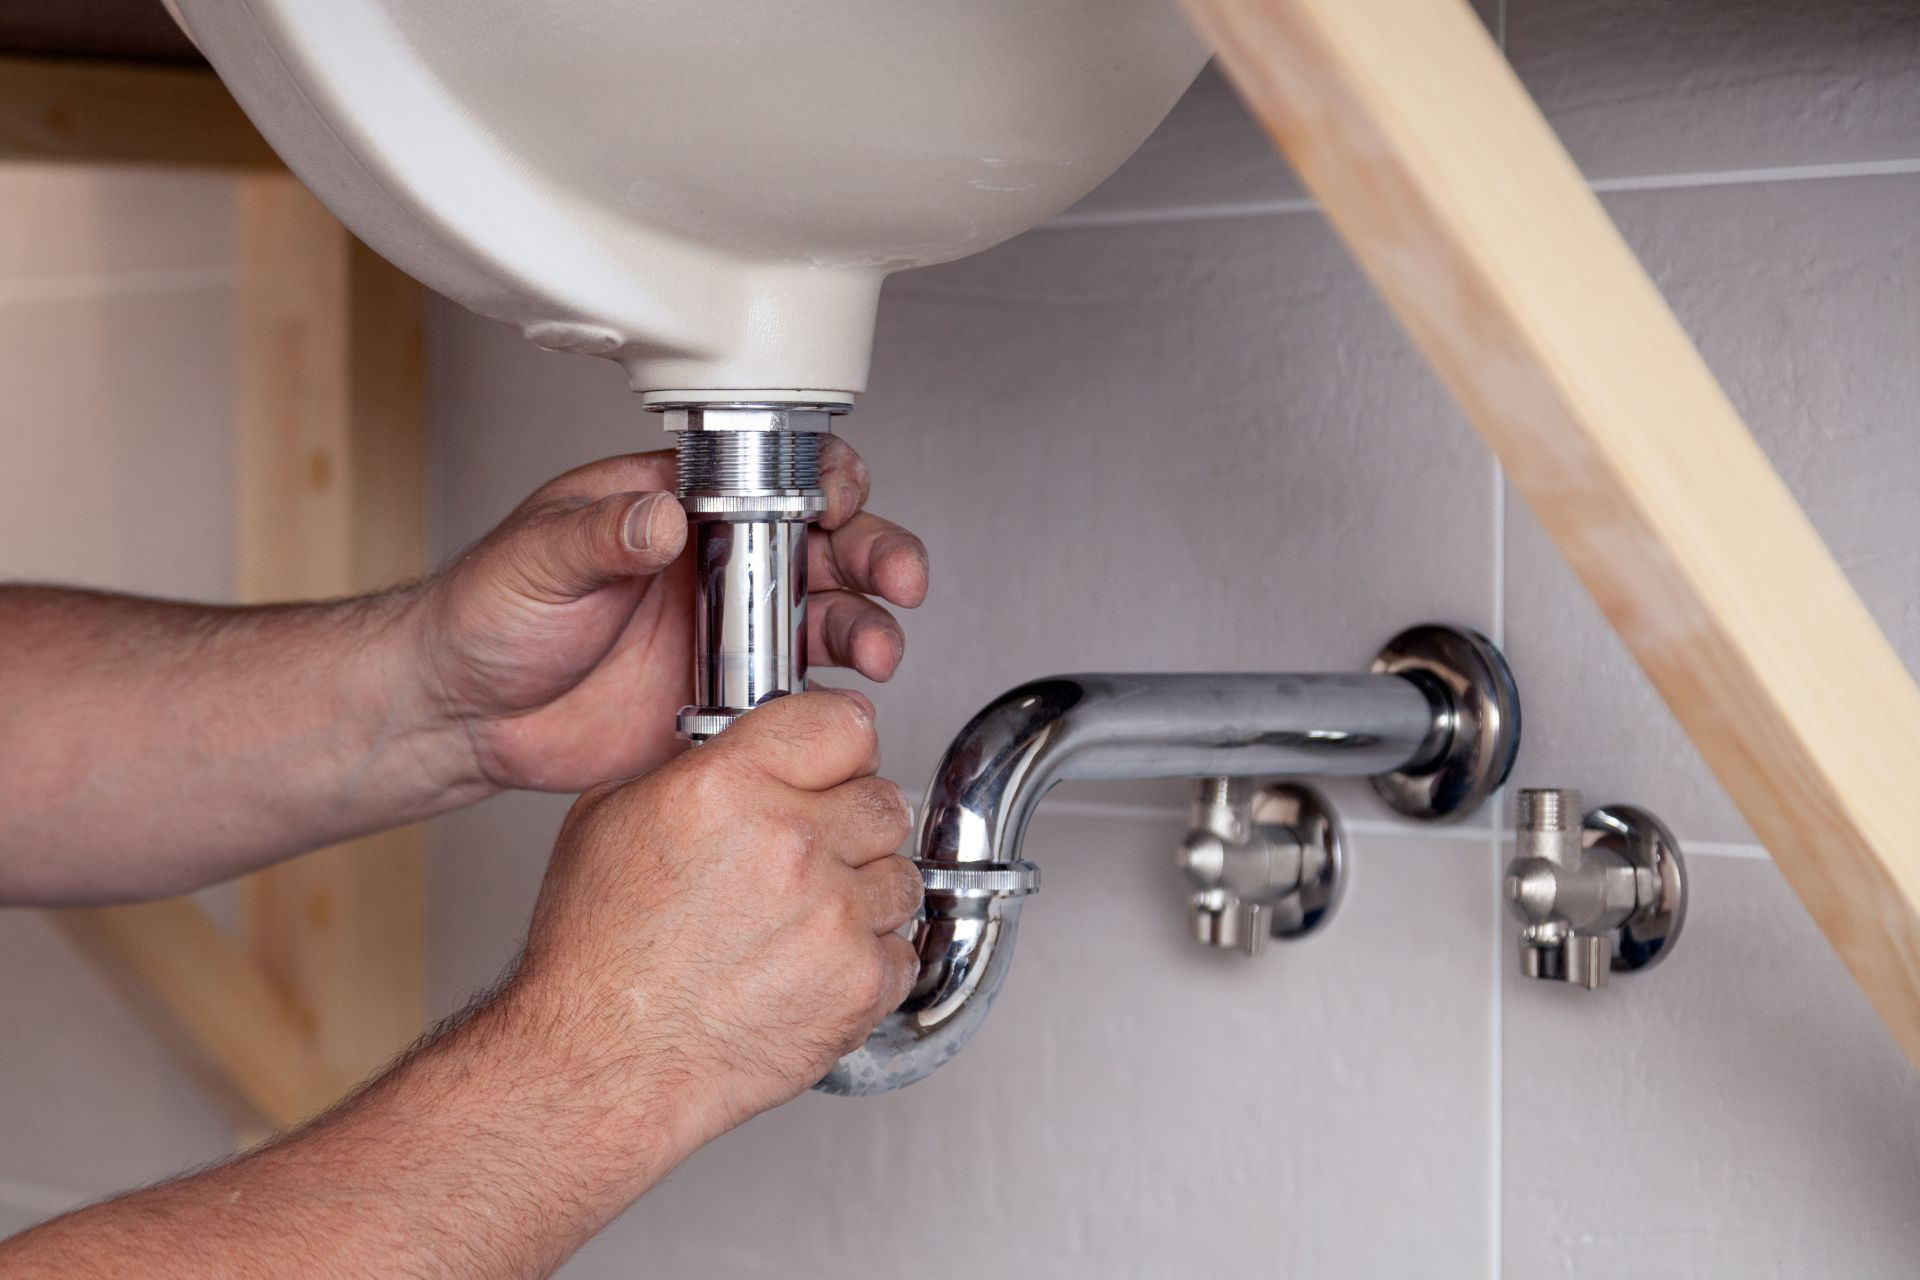 Pipe Replacement Sink Pipe Replacement Services